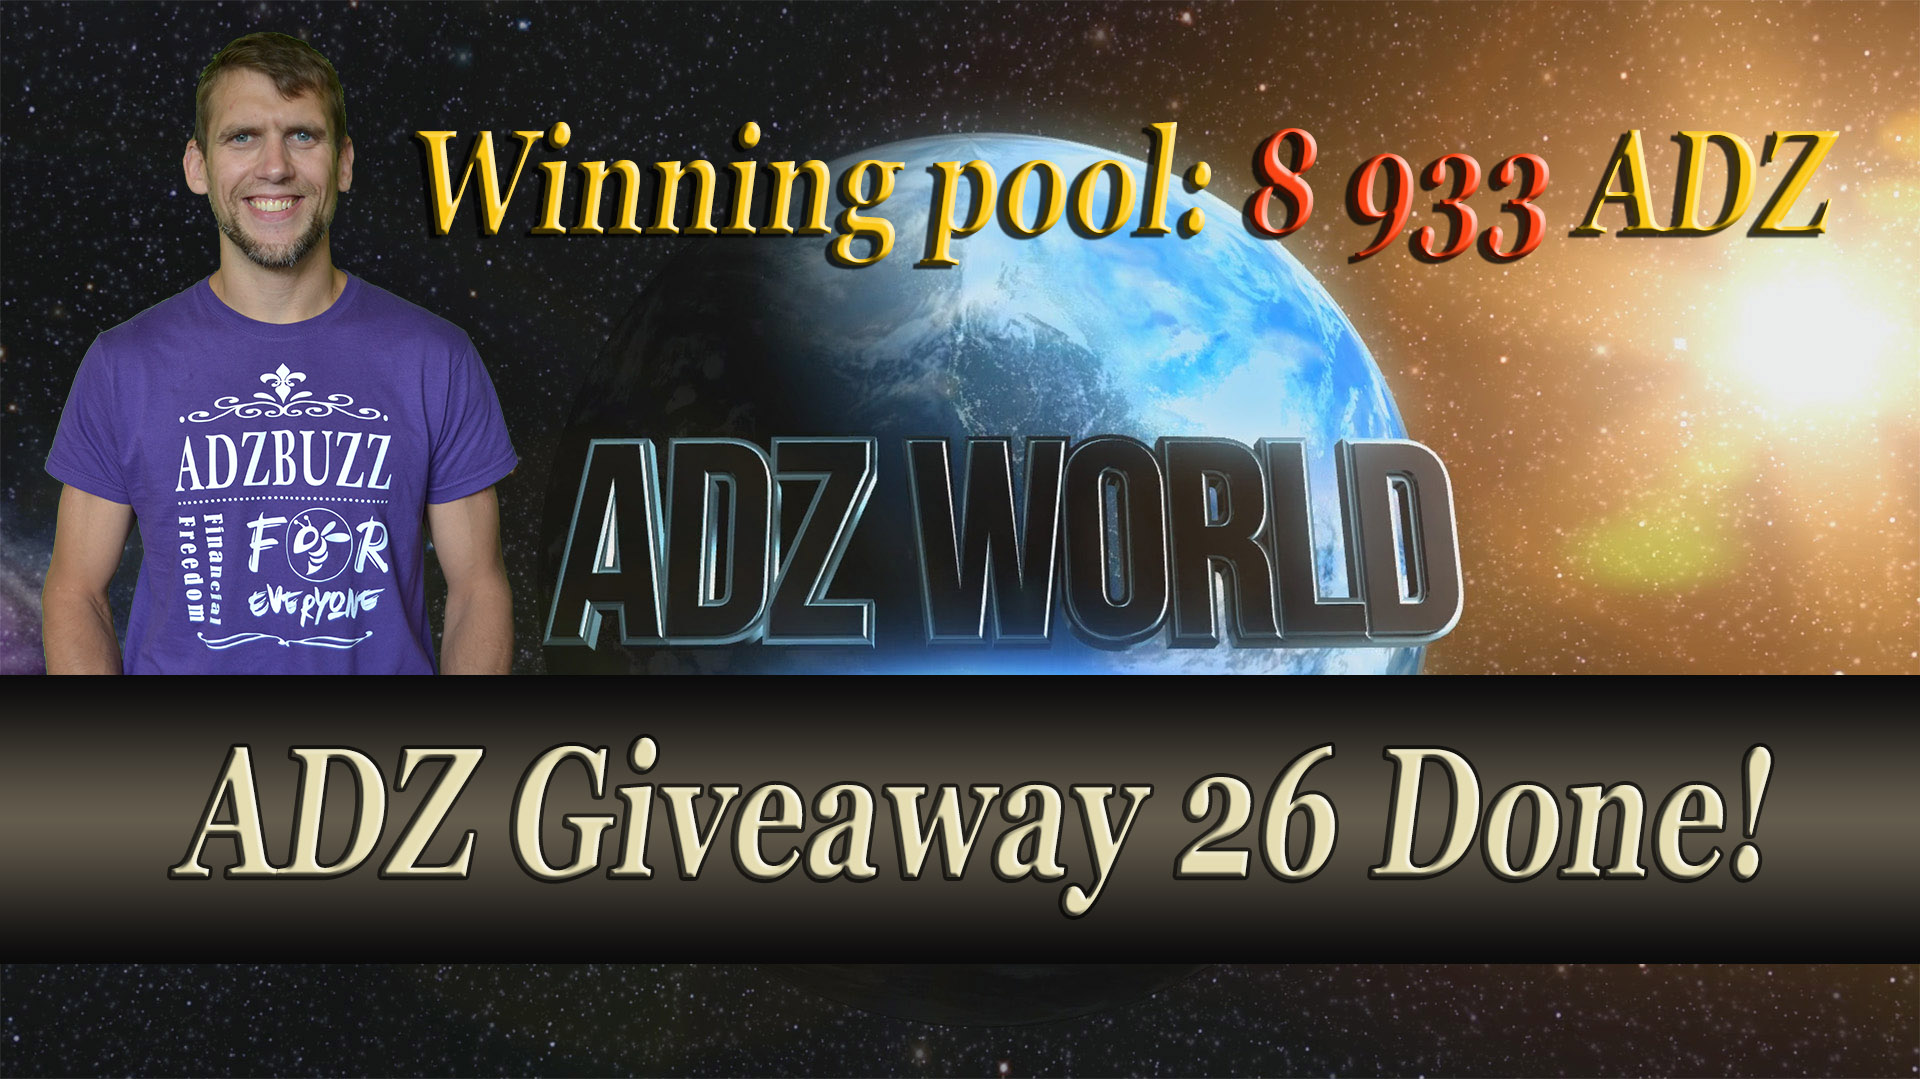 ADZ Giveaway 26 done!